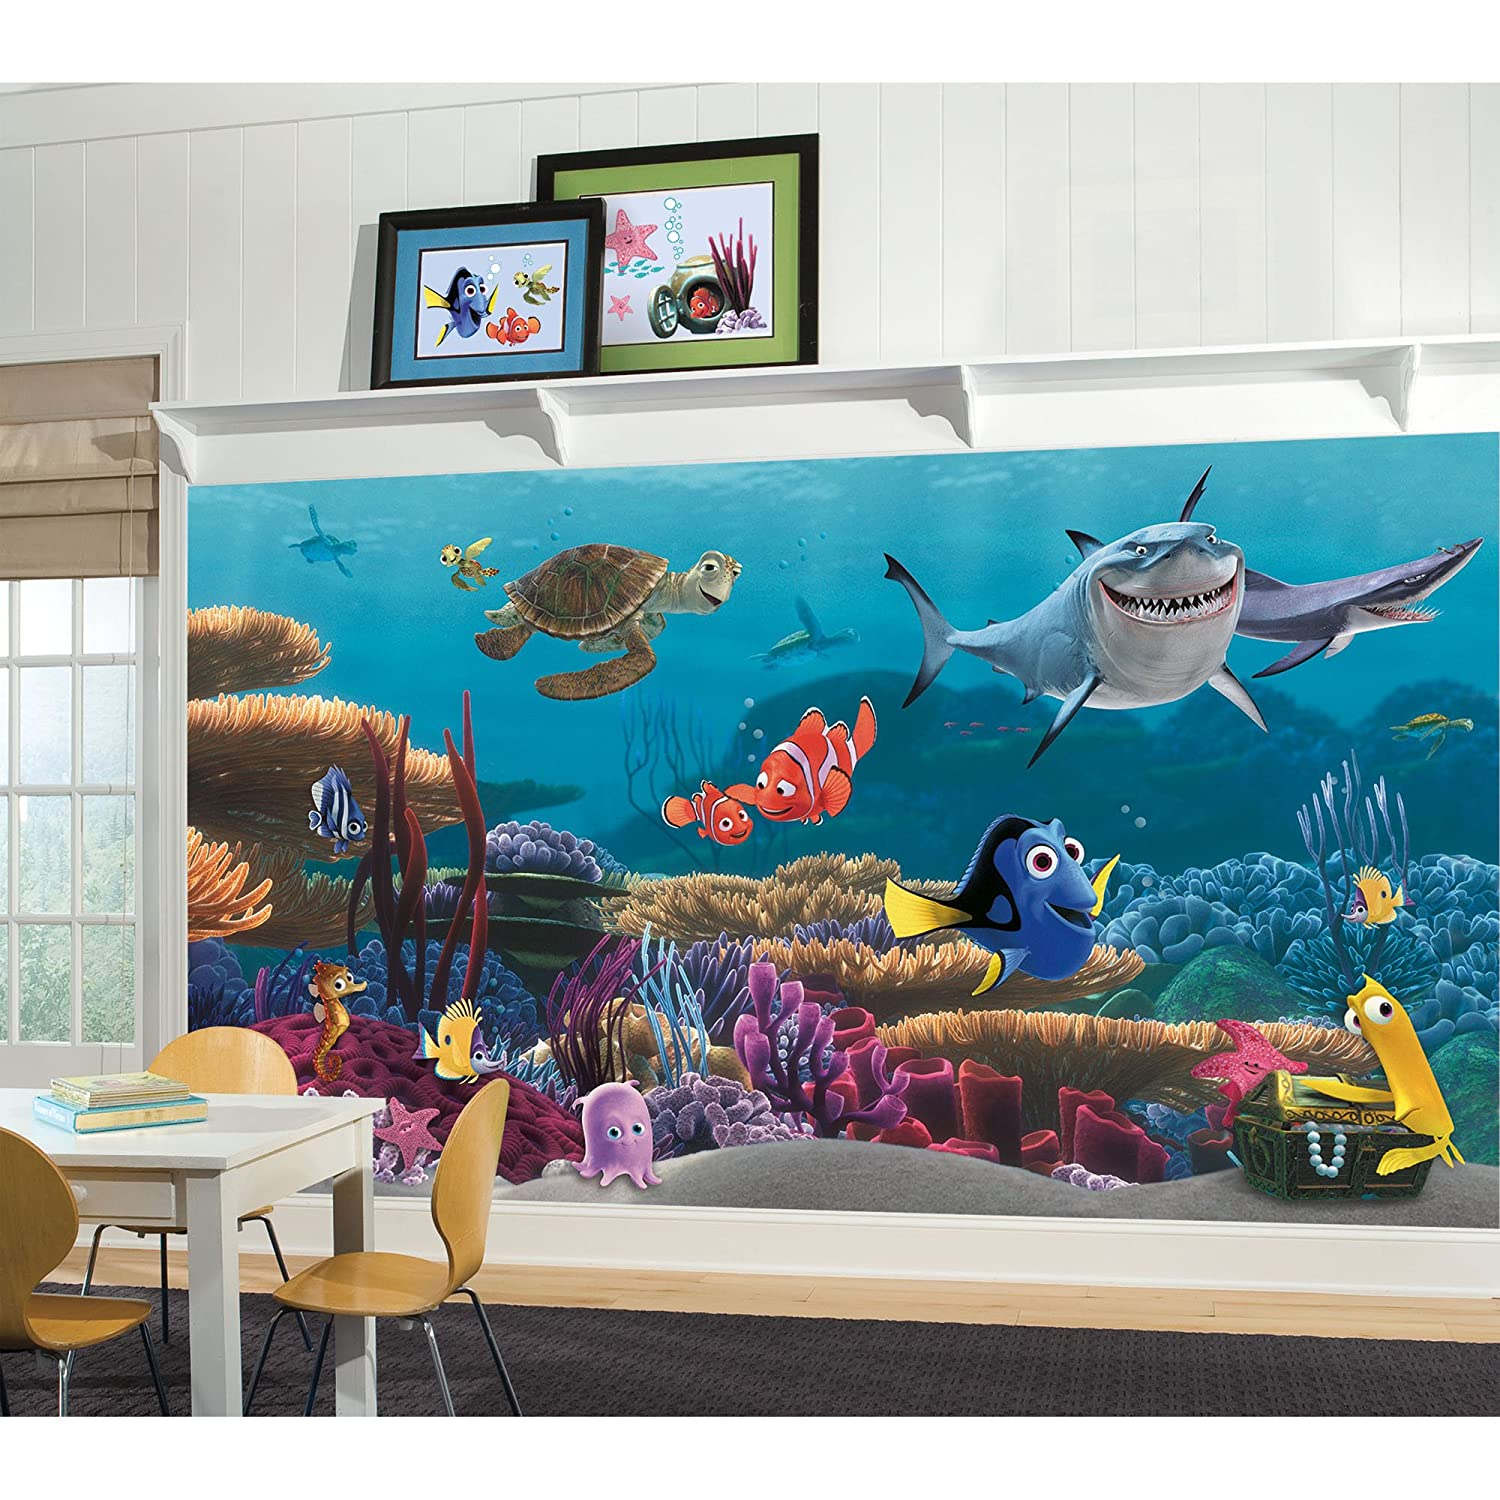 Merveilleux RoomMates JL1278M Finding Nemo Prepasted Mural 6 Feet By 10.5 Feet,  Ultra Strippable   Decorative Wall Appliques   Amazon.com